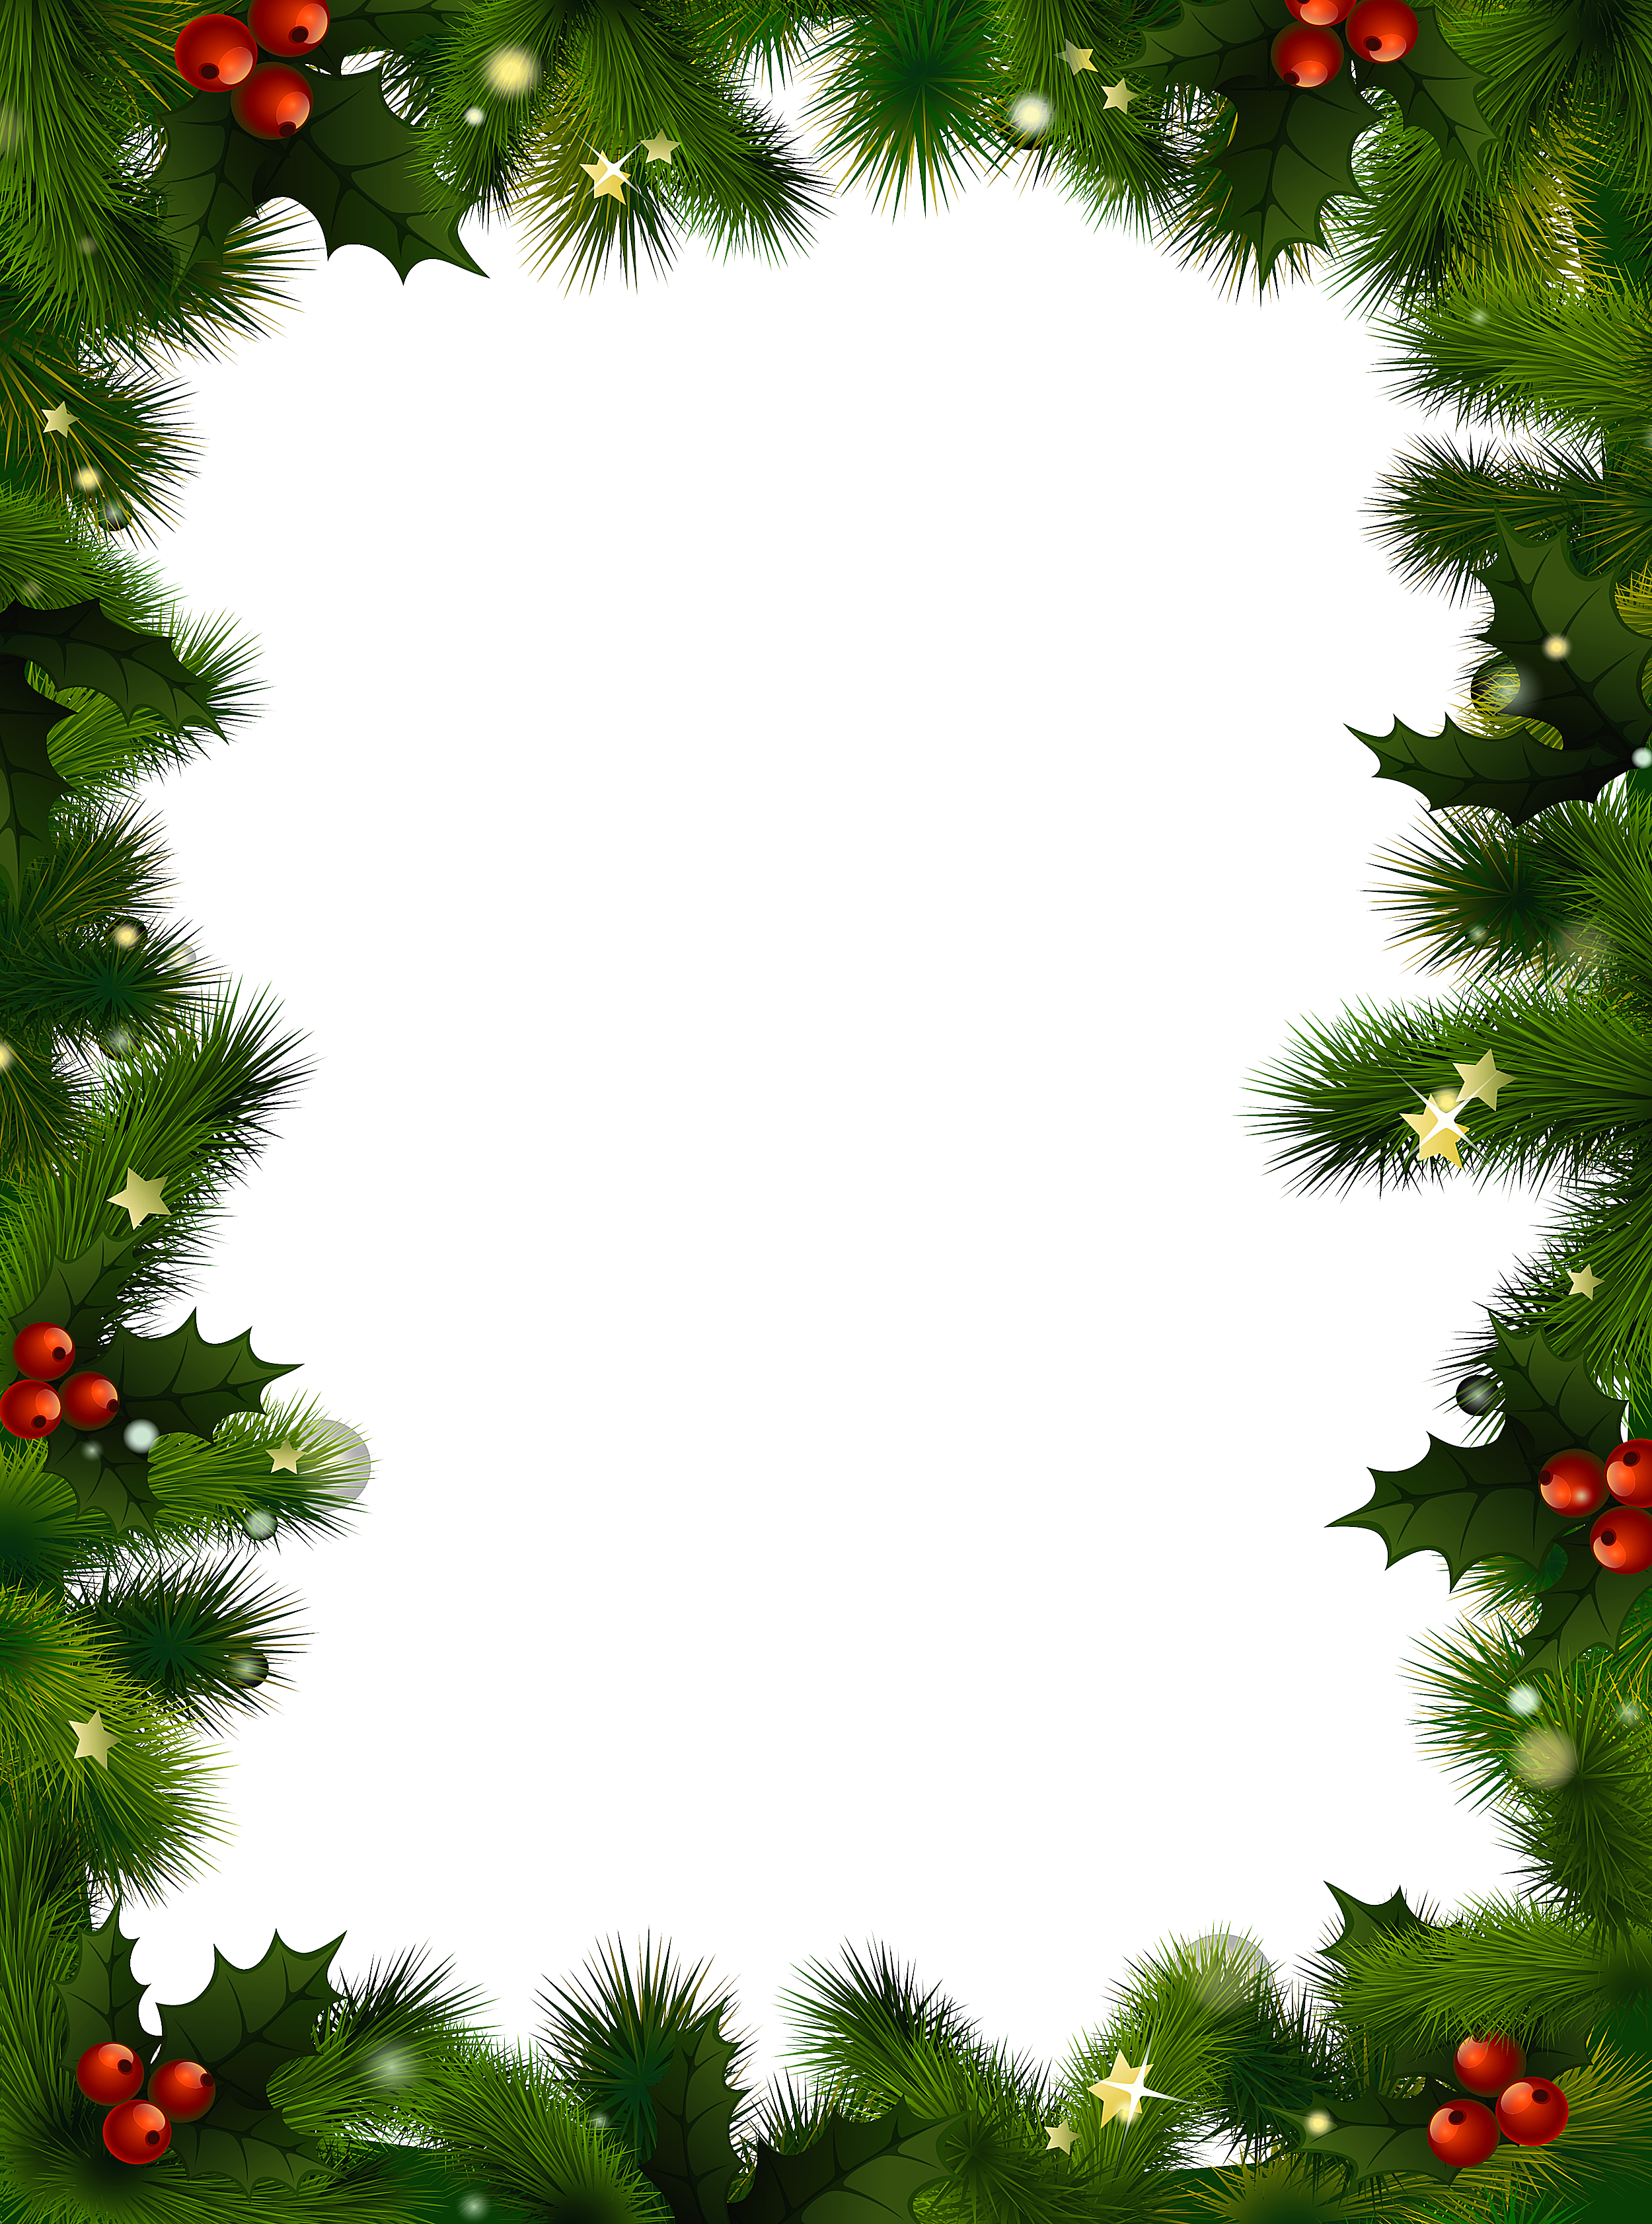 Free Holiday Clipart Borders--10